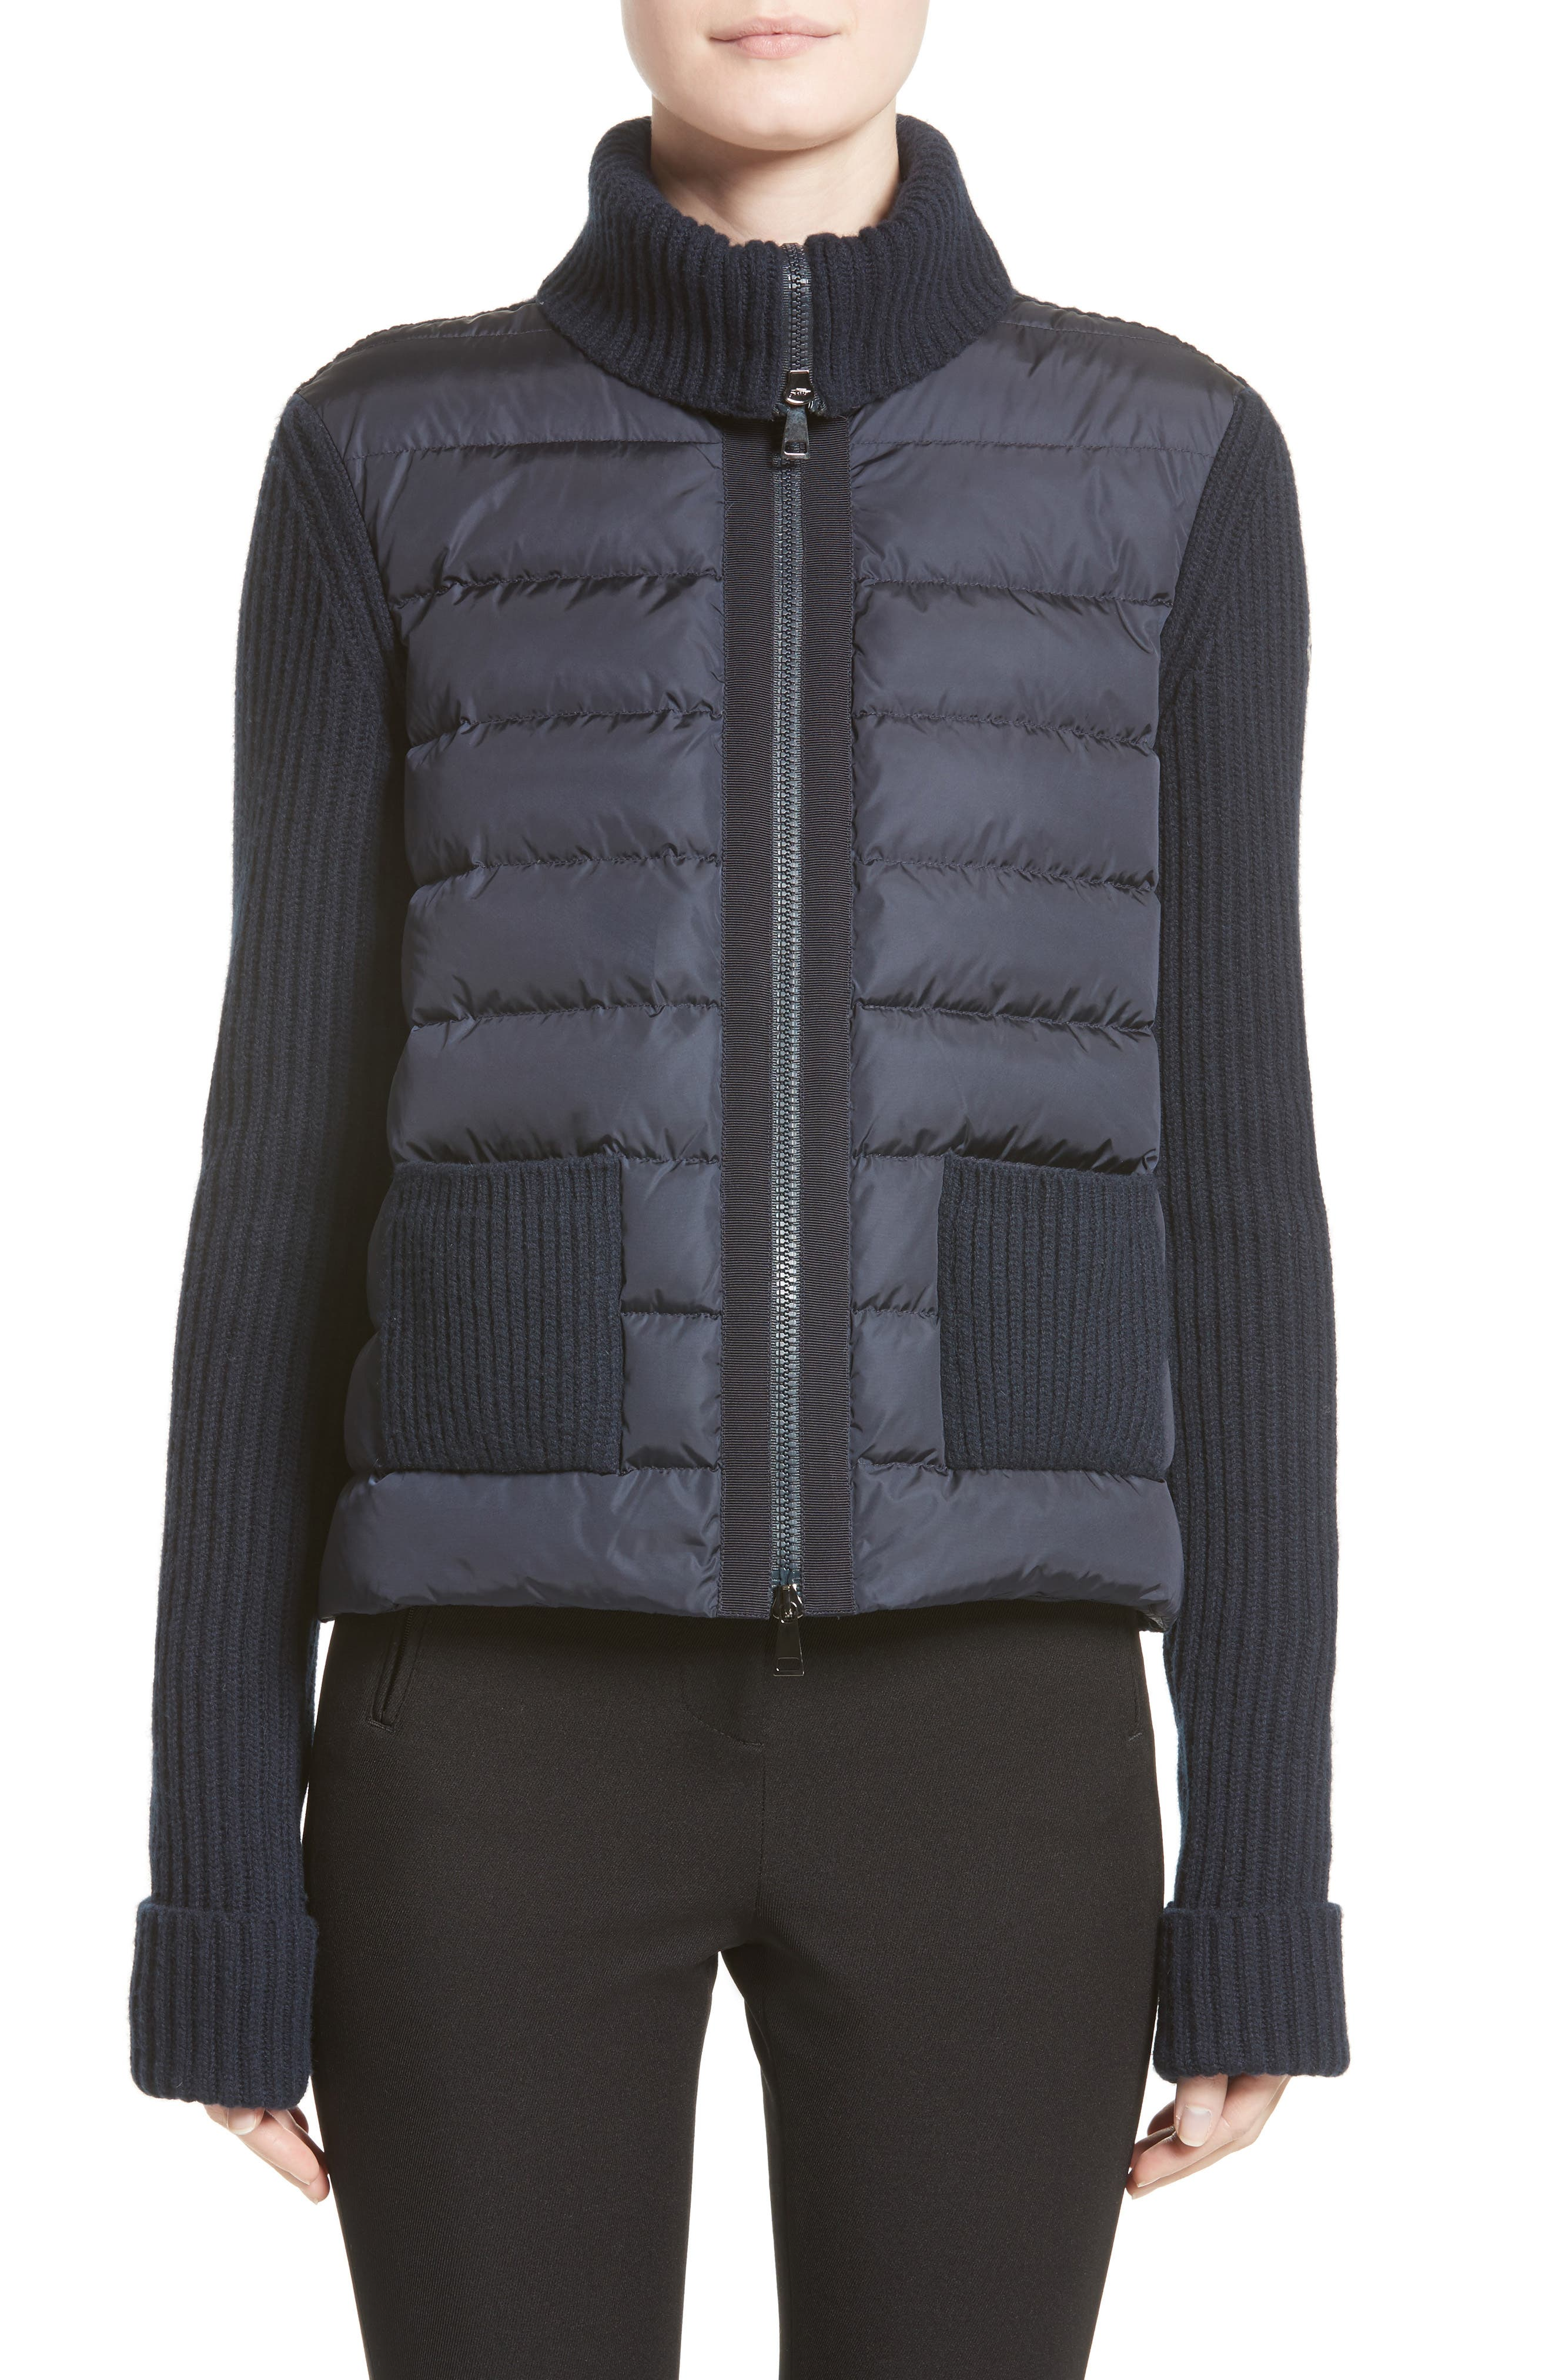 Alternate Image 1 Selected - Moncler Ciclista Quilted Down Front Sweater Jacket